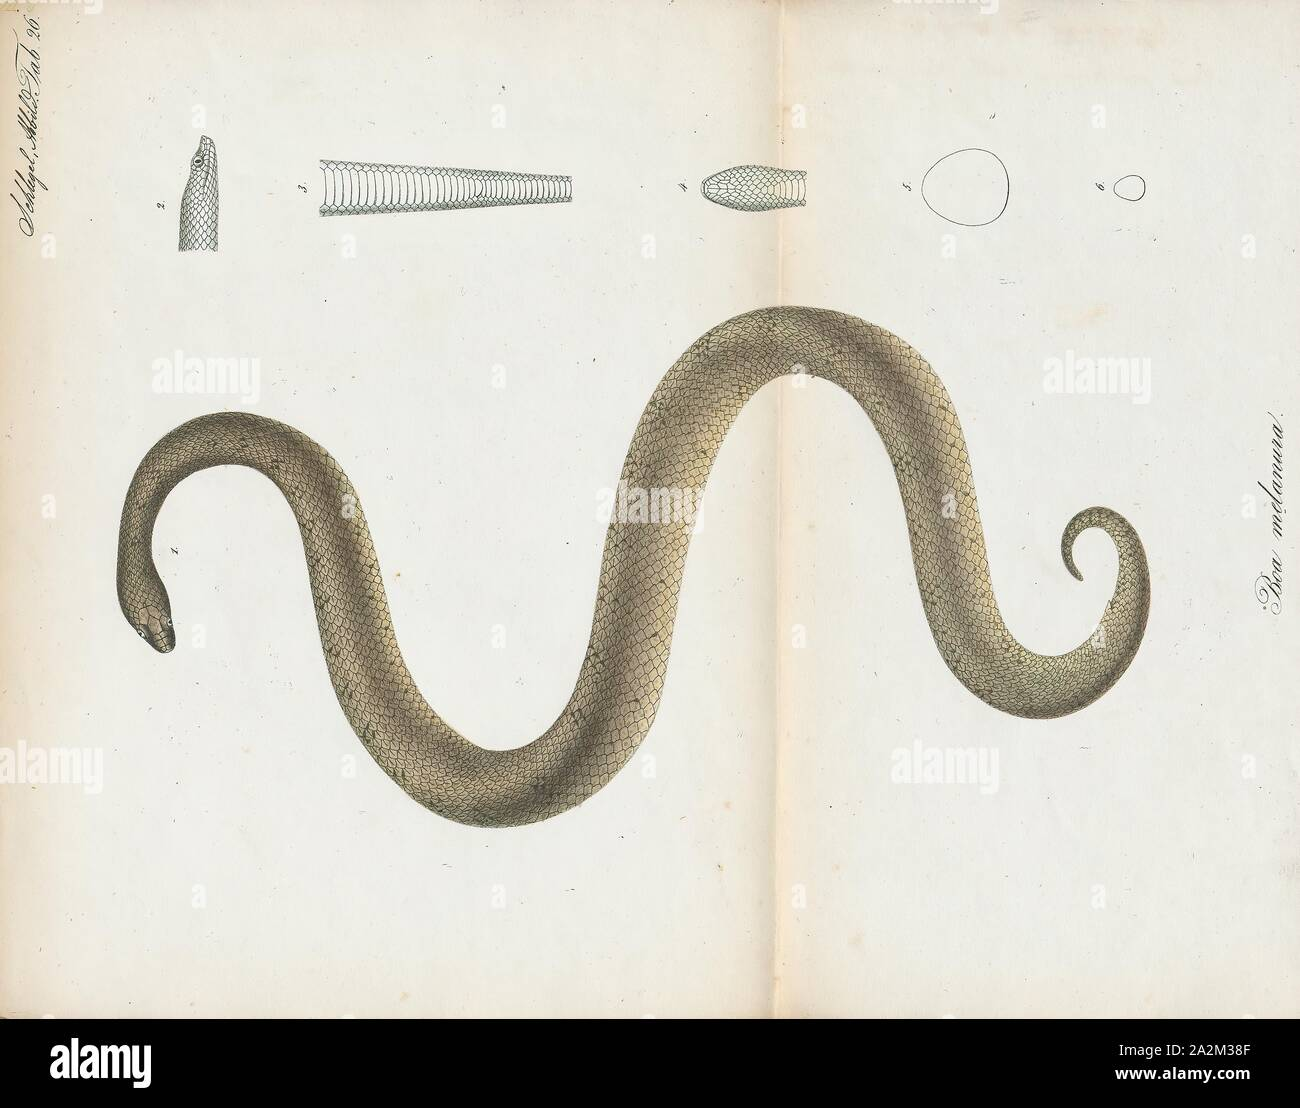 Boa melanura, Print, Tropidophis melanurus, commonly known as dusky dwarf boa, Cuban wood snake, or Cuban giant dwarf boa, is a non-venomous dwarf boa species found mainly in Cuba. Currently, there are three subspecies recognized, including the typical form described here., 1700-1880 Stock Photo